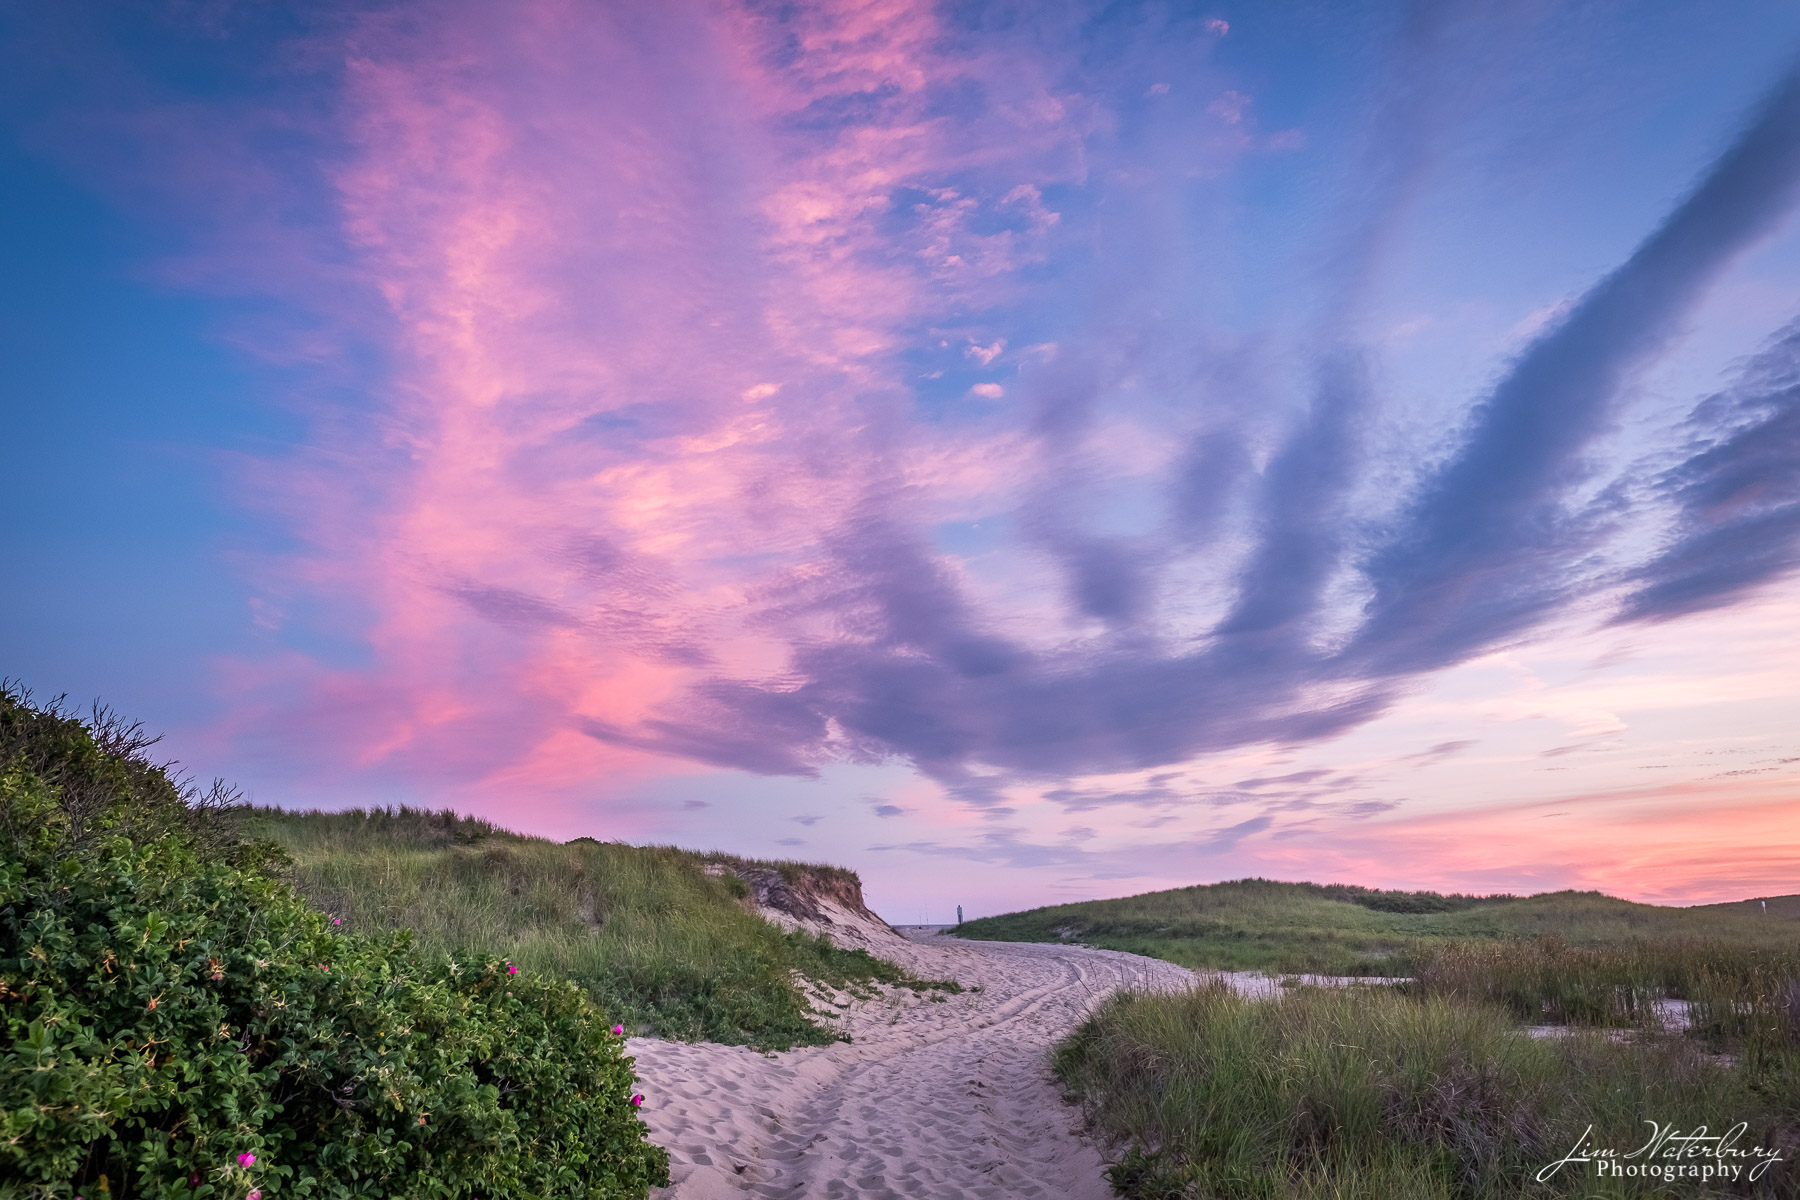 Following a colorful sunset, the sky glows with pink and blue, as a sandy beach access road winds through the surrounding shrubs...